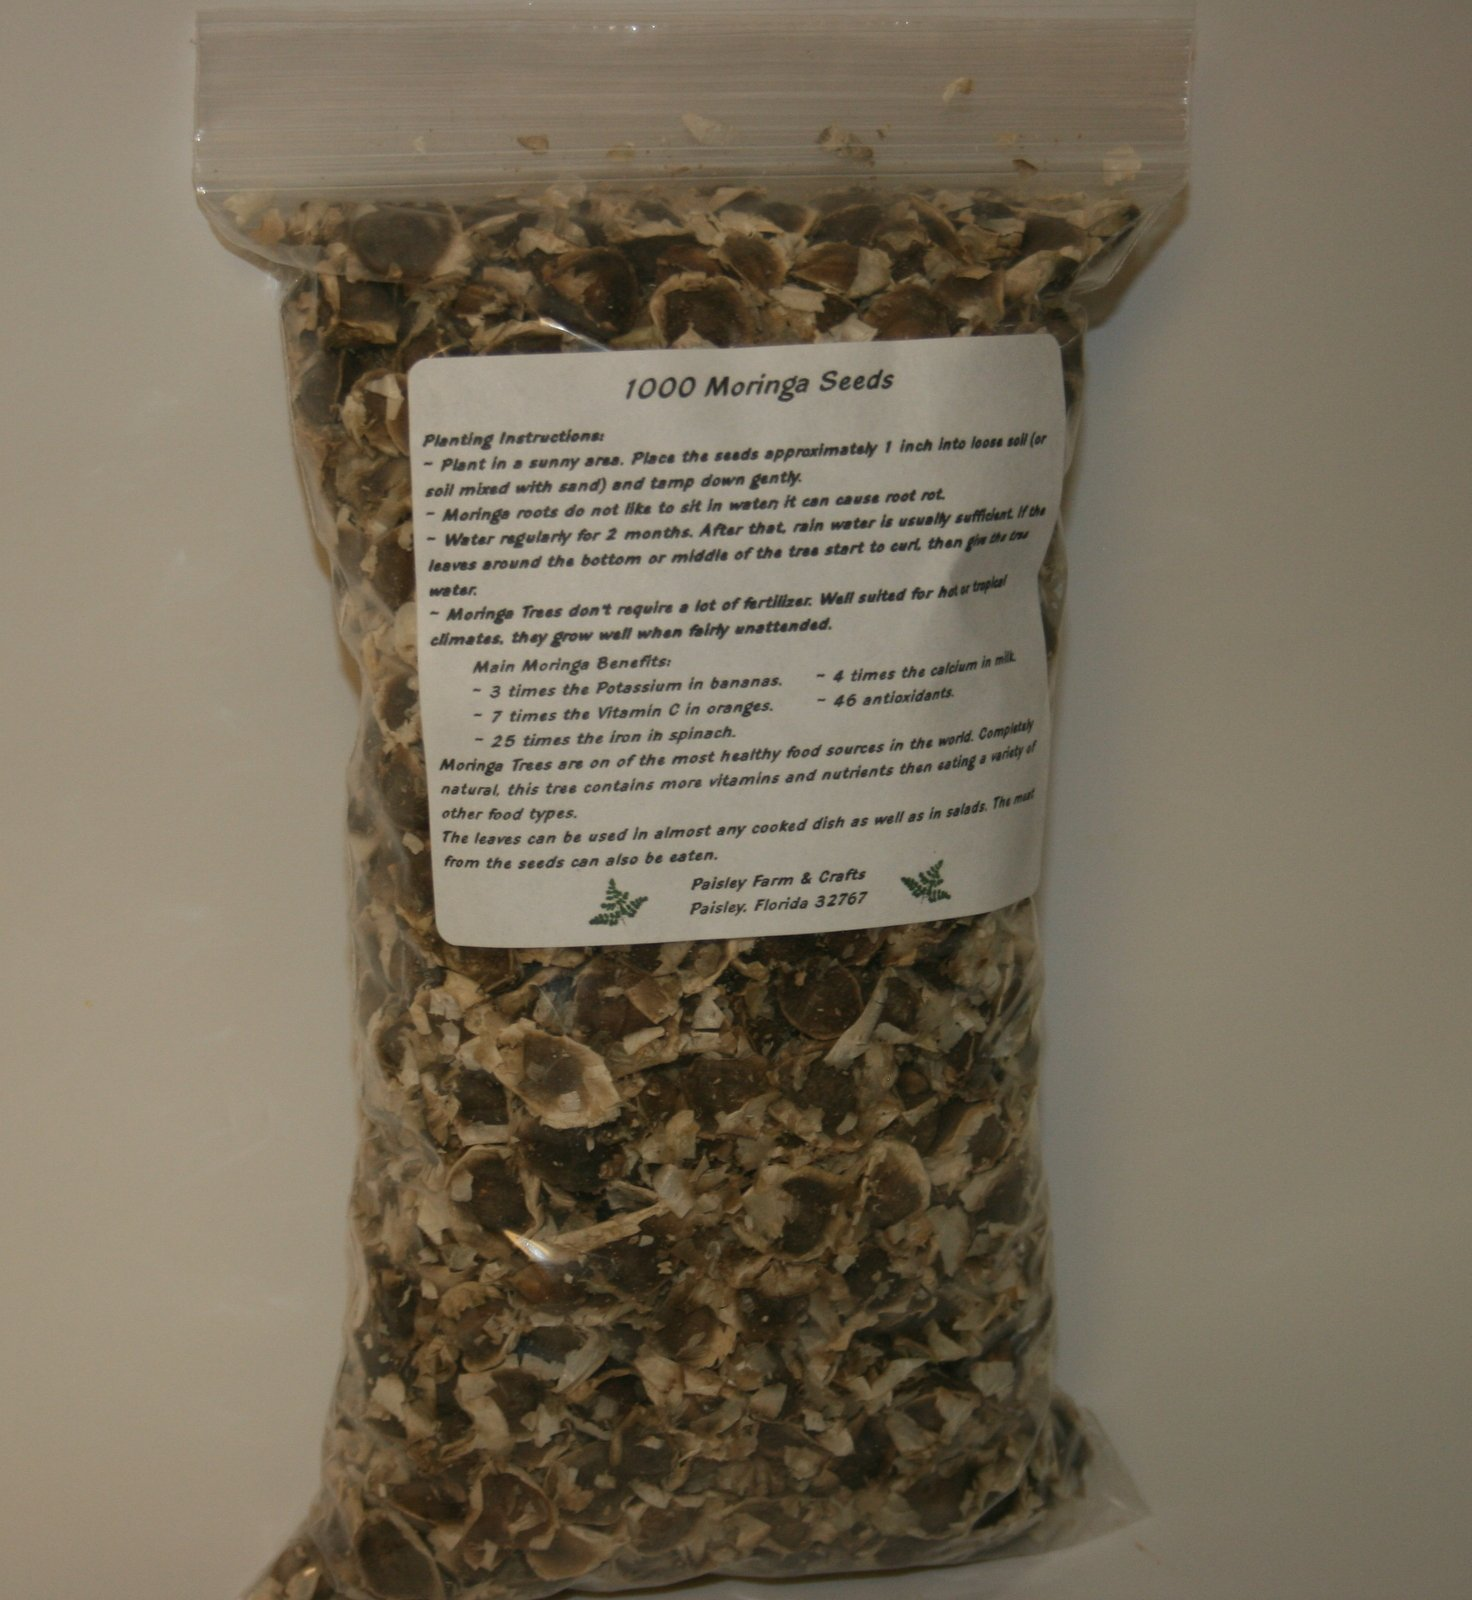 10,000 Moringa Oleifera Seeds - US Customs Cleared - Distributed by Paisley Farm, FL by Paisley Farm and Crafts